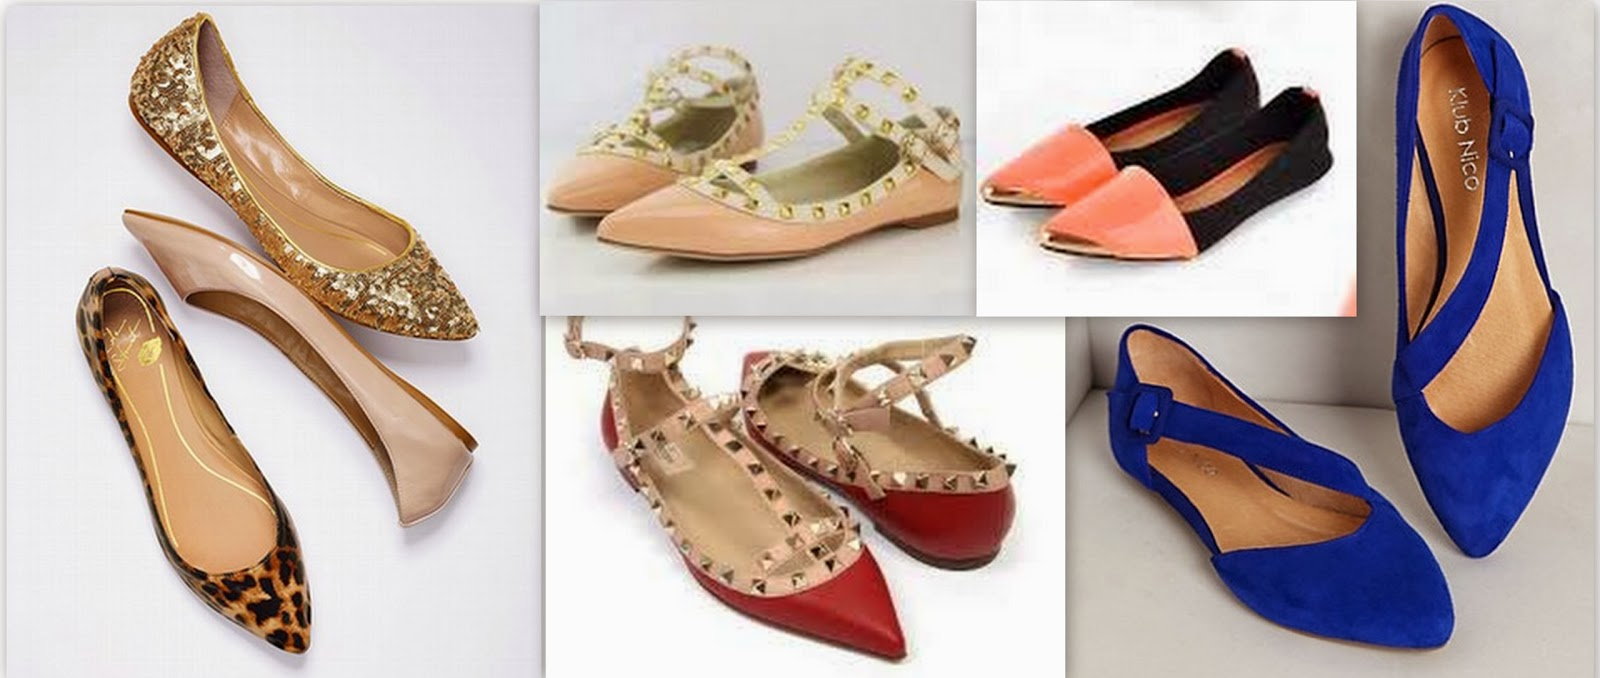 pointy toe flats, red studded flats, cobalt blue flats, nude flats, golden flats, tiger print flats